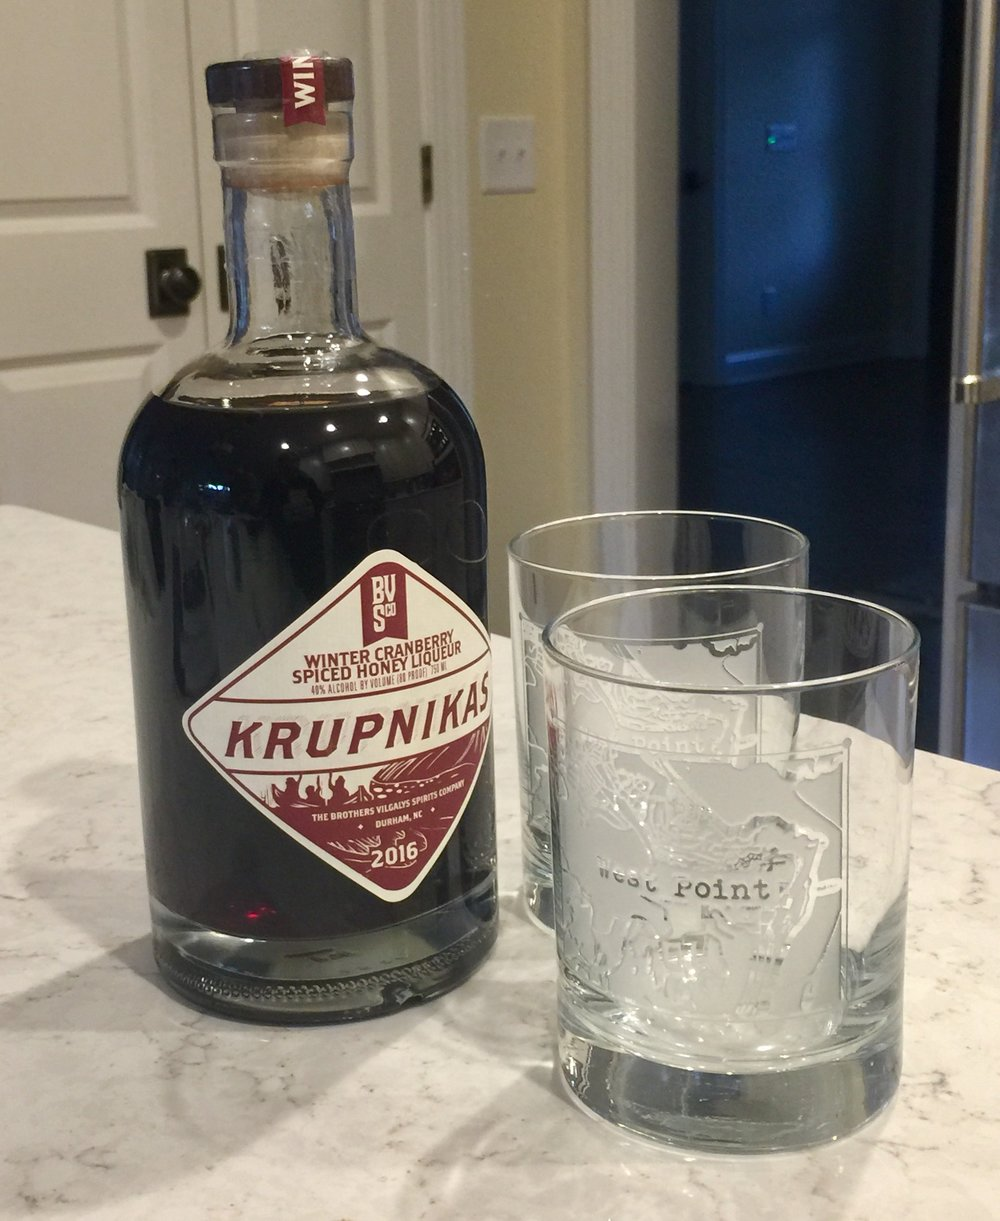 Near-freezing temps meant breaking out some spiced liquor. Cut with ginger ale, it works a treat as the weather turns colder.